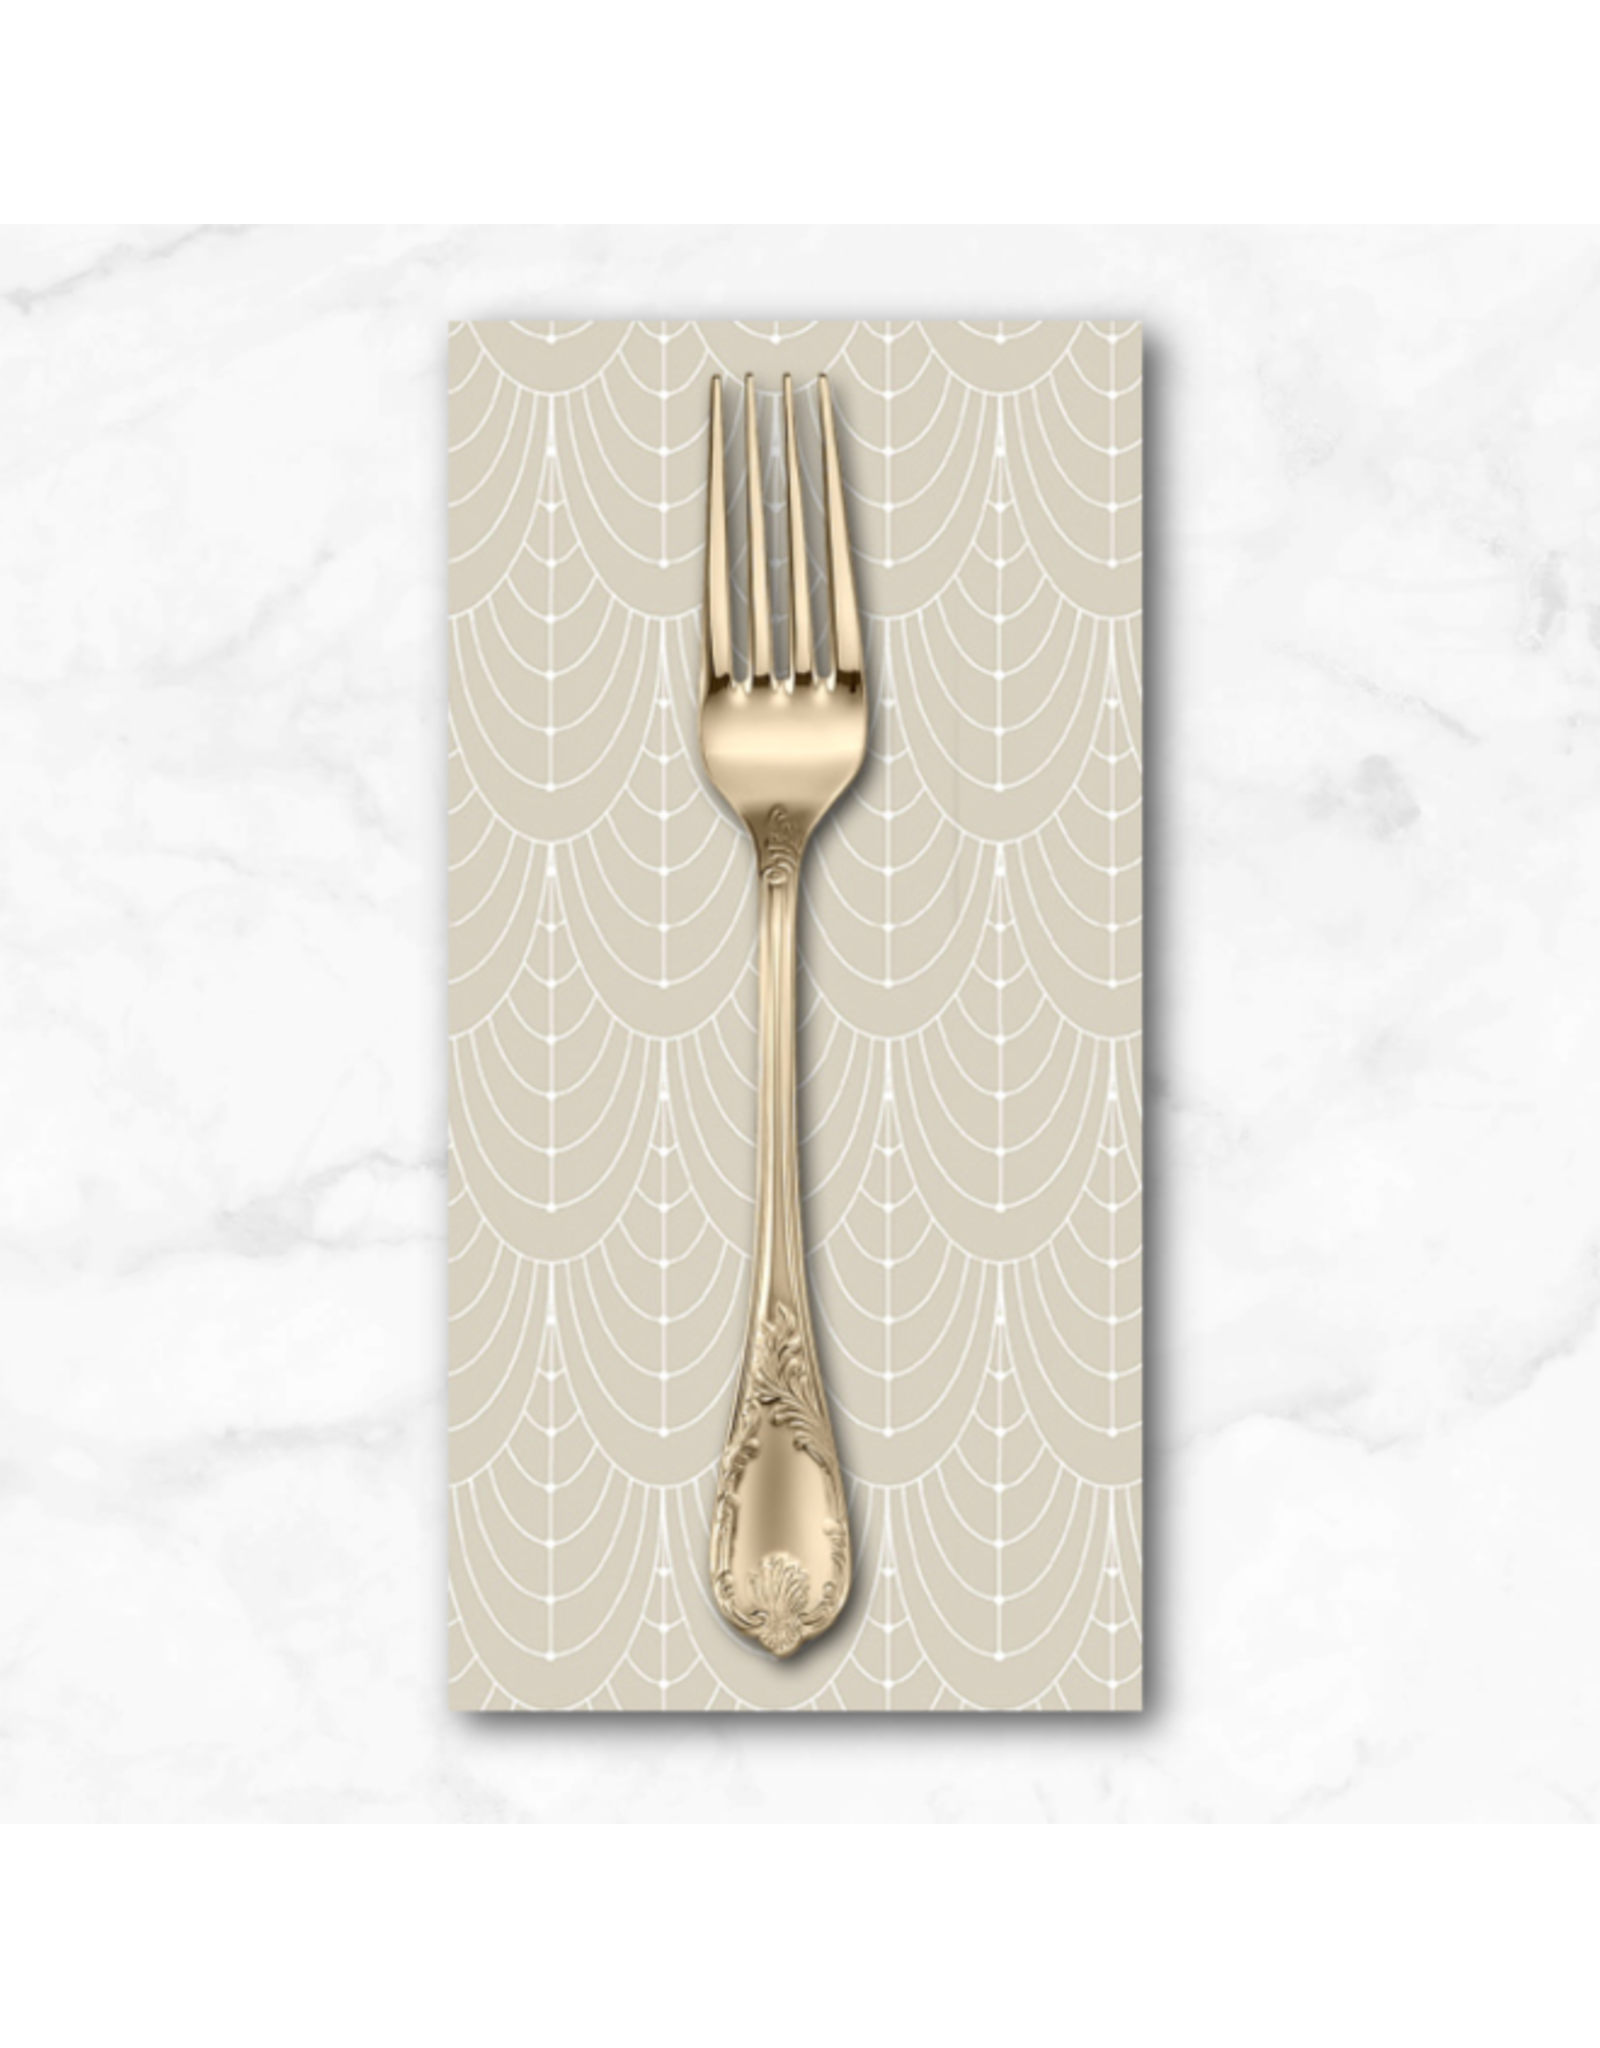 PD's Giucy Giuce Collection Century Prints, Deco Curtains in Champagne, Dinner Napkin